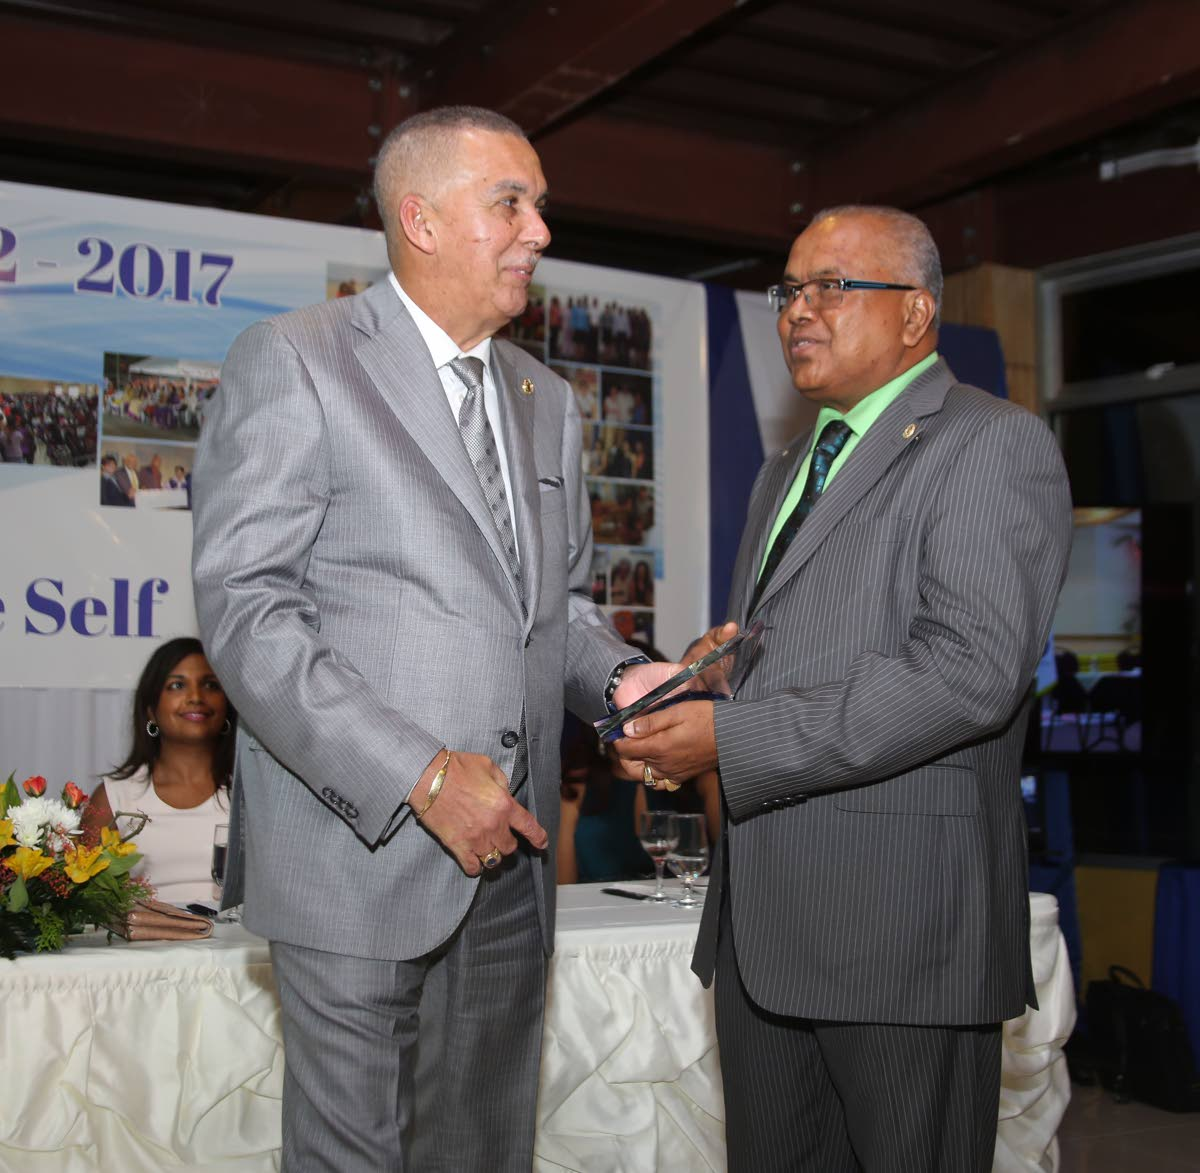 Suruj Mangaroo of the Rotary Club of Penal presents President Anthony Carmona, left, with an award during the Club's 15th anniversary celebrations at Doc's Ranch in Phillipine on the weekend.